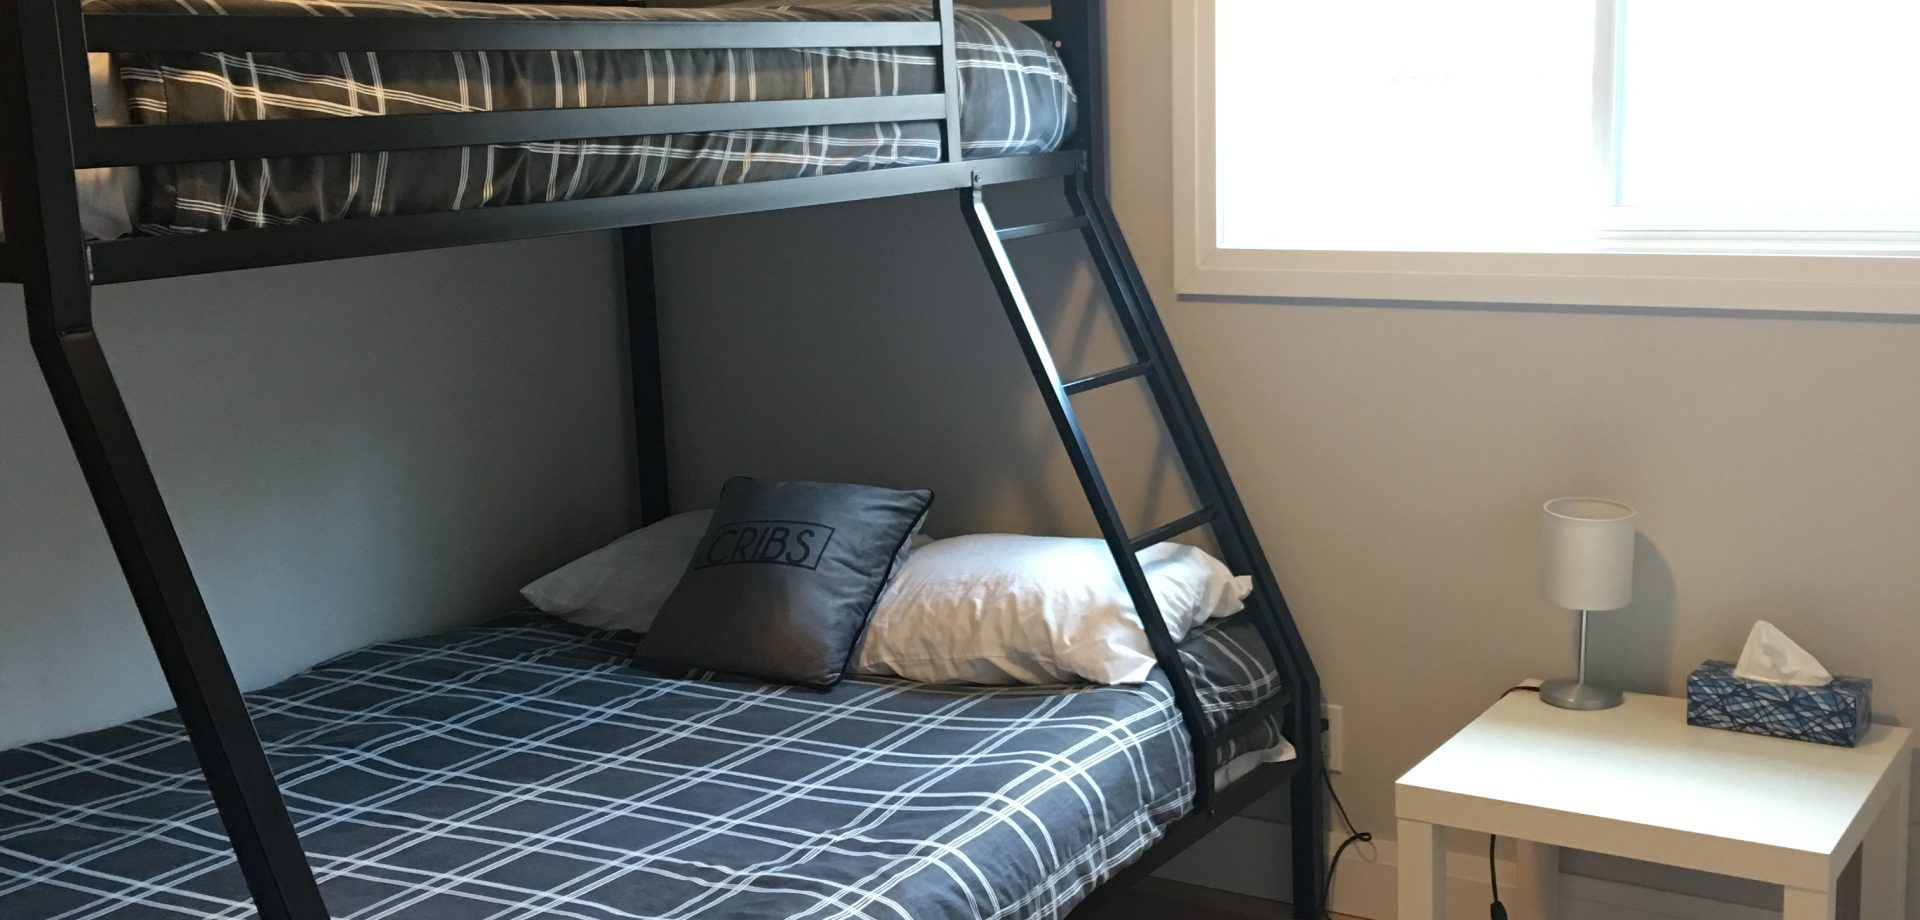 Second bedroom with bunkbeds